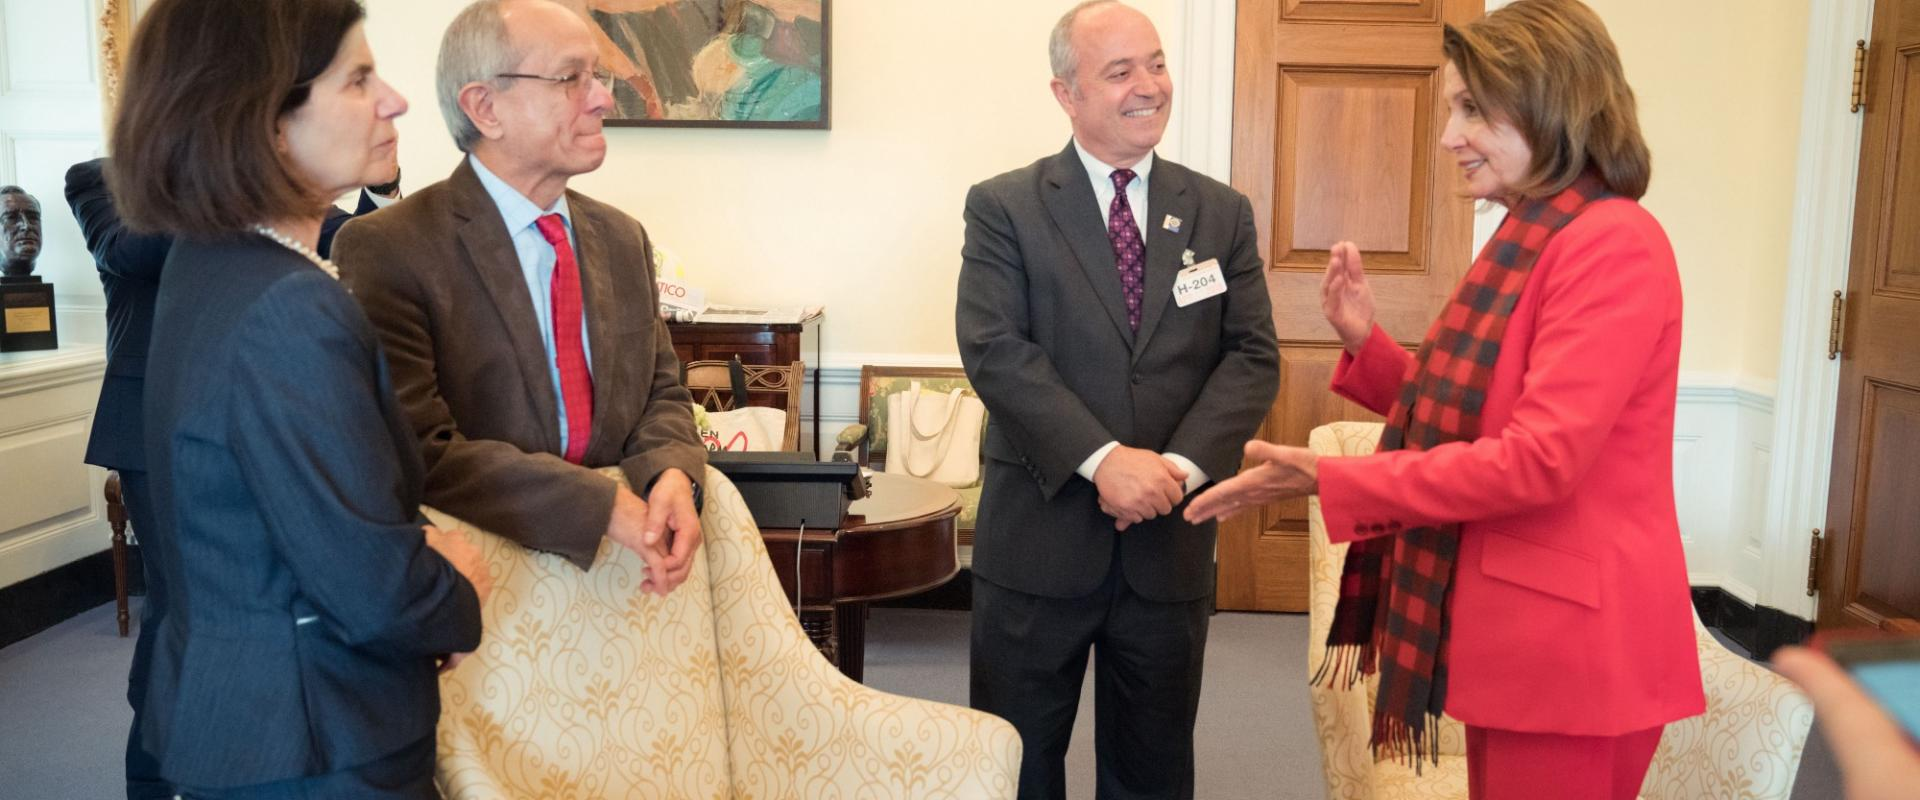 Congresswoman Pelosi meets with Dr. Leslie Wong, President of San Francisco State University, and his wife Phyllis where they discussed support for robust investments in Pell Grants.